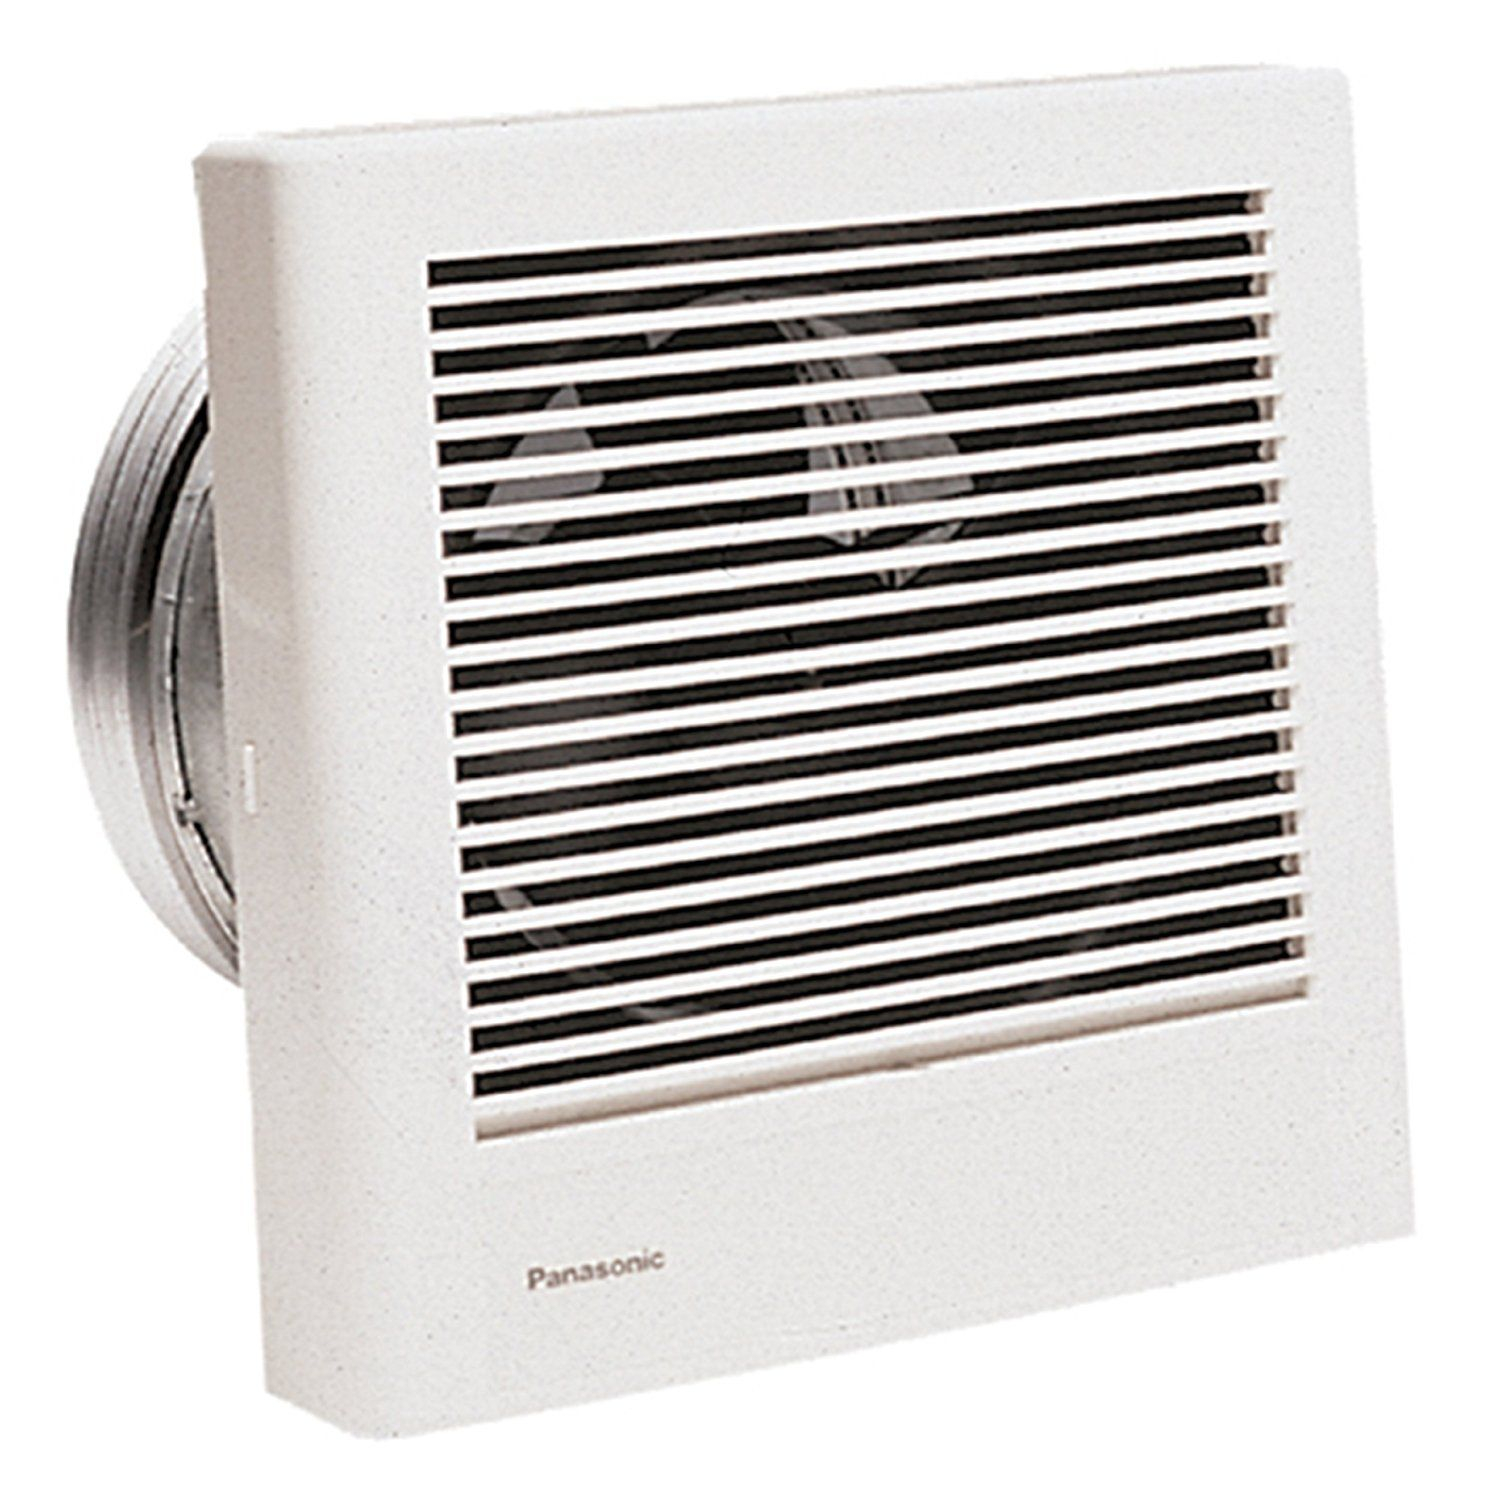 Panasonic Fv 08wq1 Whisperwall 70 Cfm Wall Mounted Fan within proportions 1500 X 1500